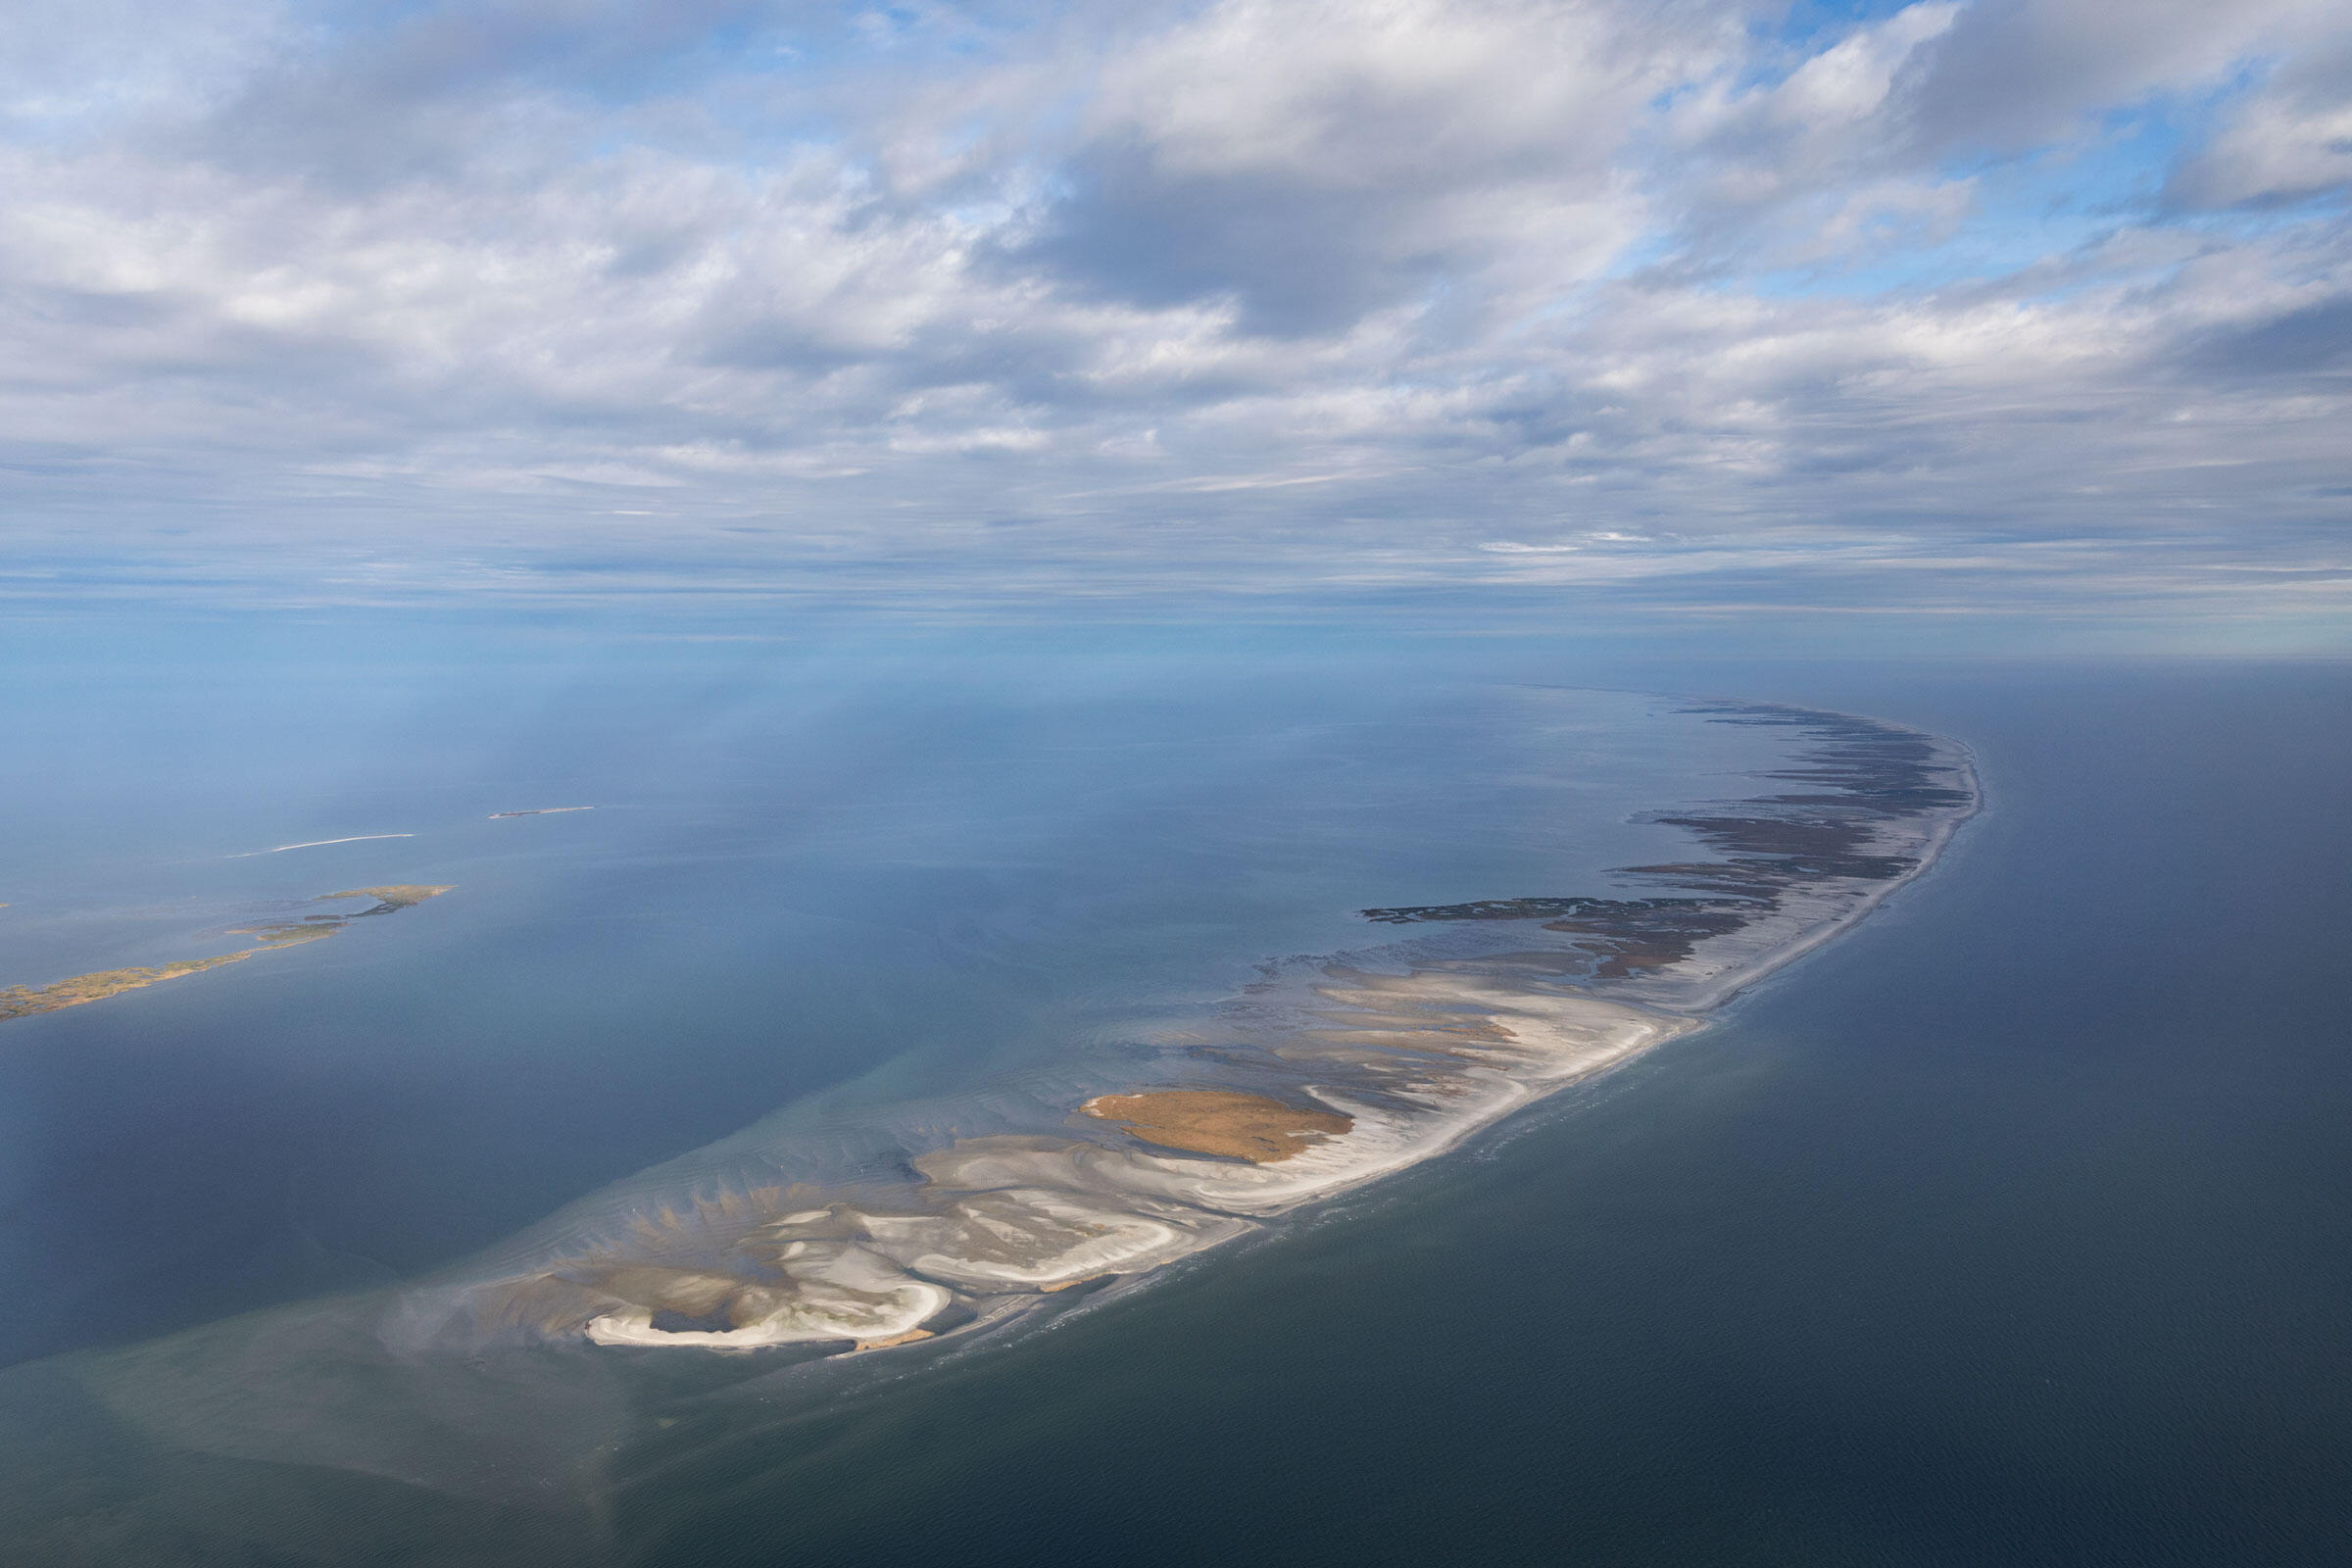 Today the powder-white beaches of Louisiana's Chandeleur Islands look pristine. Two weeks after the 2010 Deepwater Horizon explosion, oil reached these fragile shores. Mac Stone